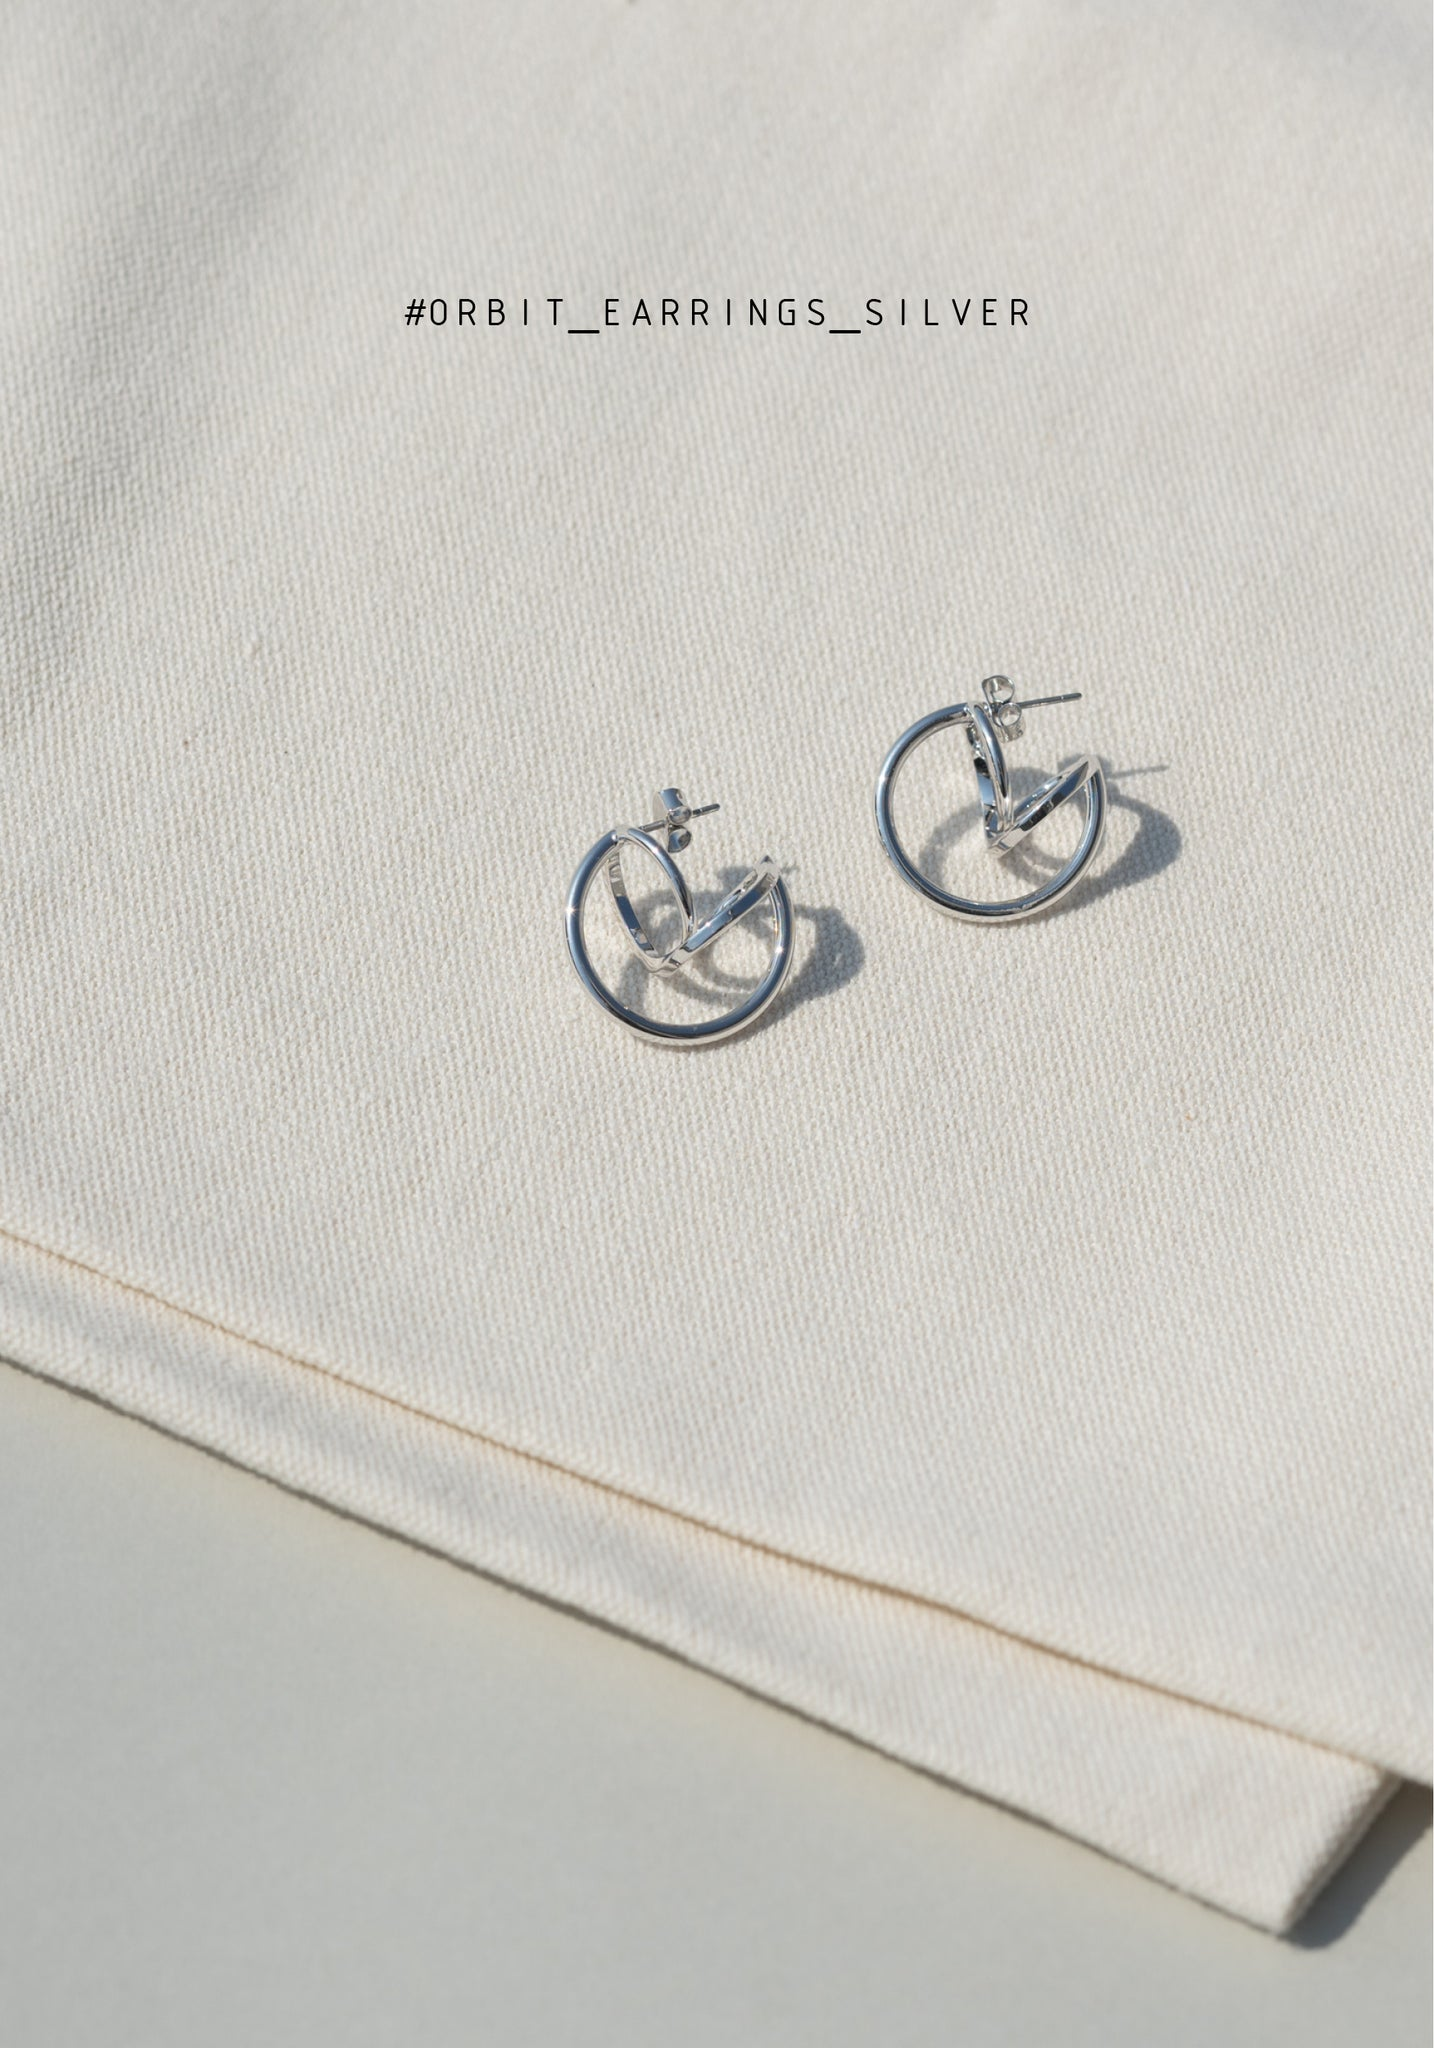 Orbit Earrings Silver